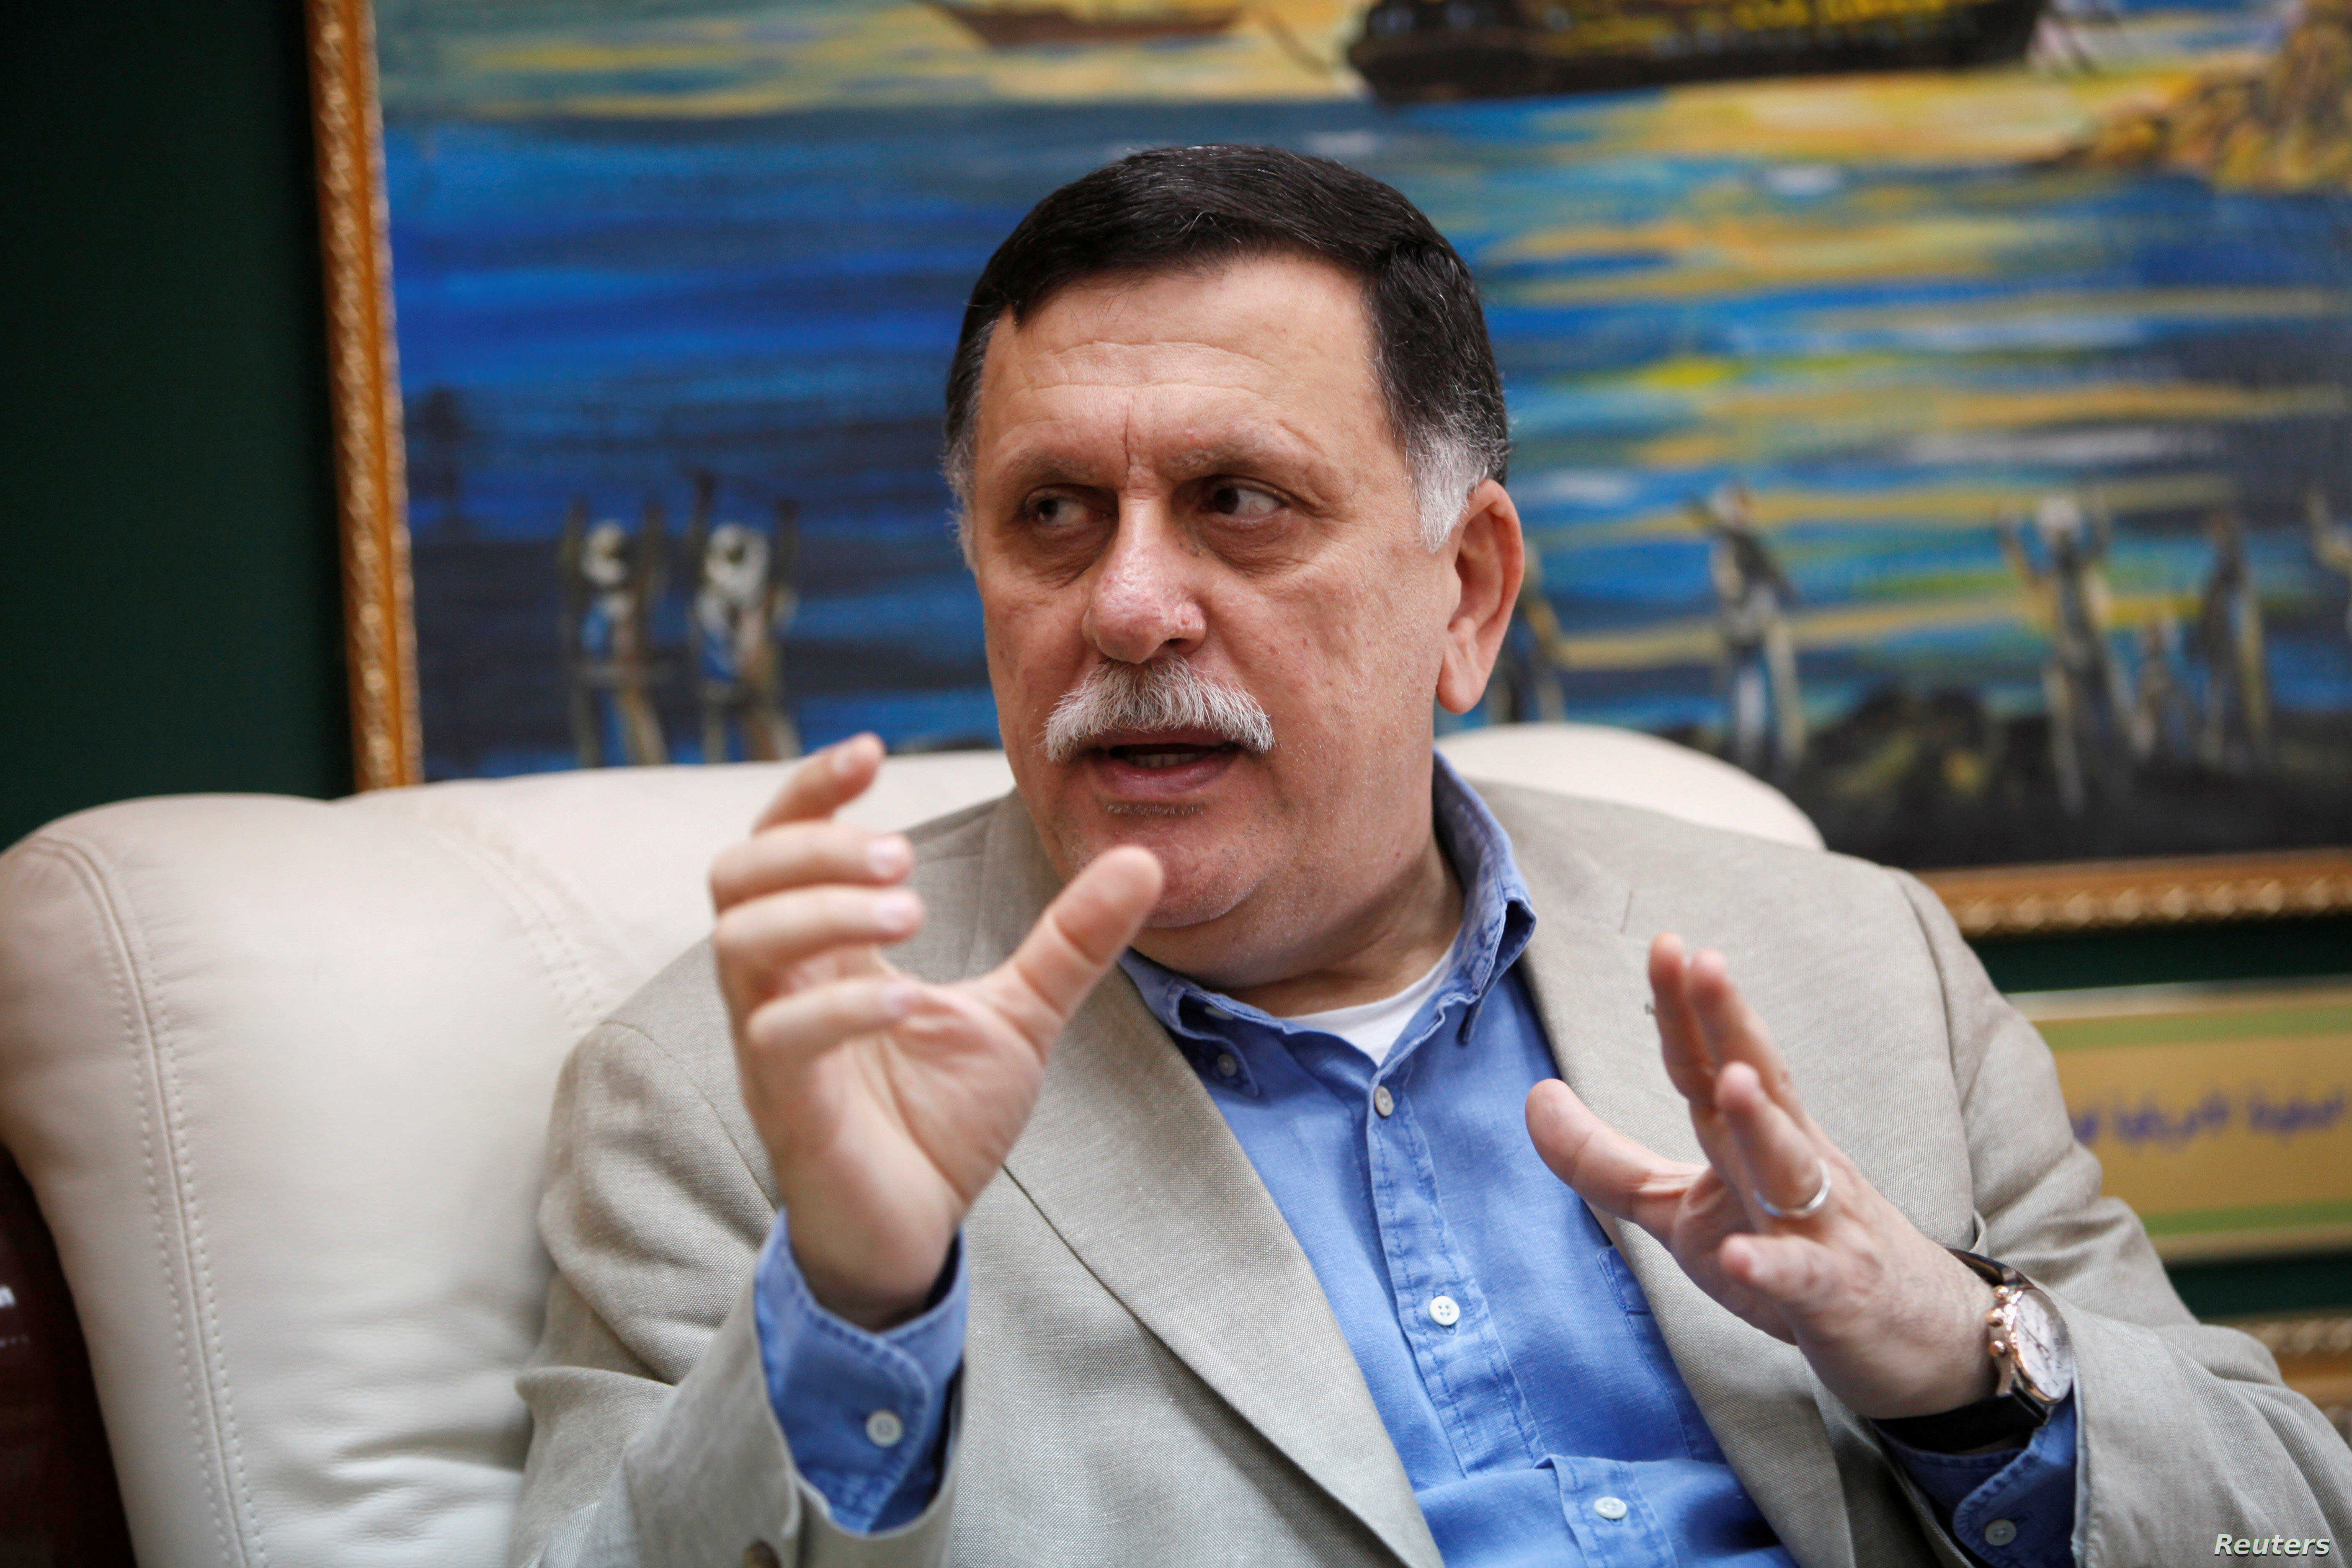 FILE PHOTO: Prime Minister of Libya's unity government Fayez Seraj speaks during an interview with Reuters at his office in the naval base of Tripoli, Libya, June 3, 2016.